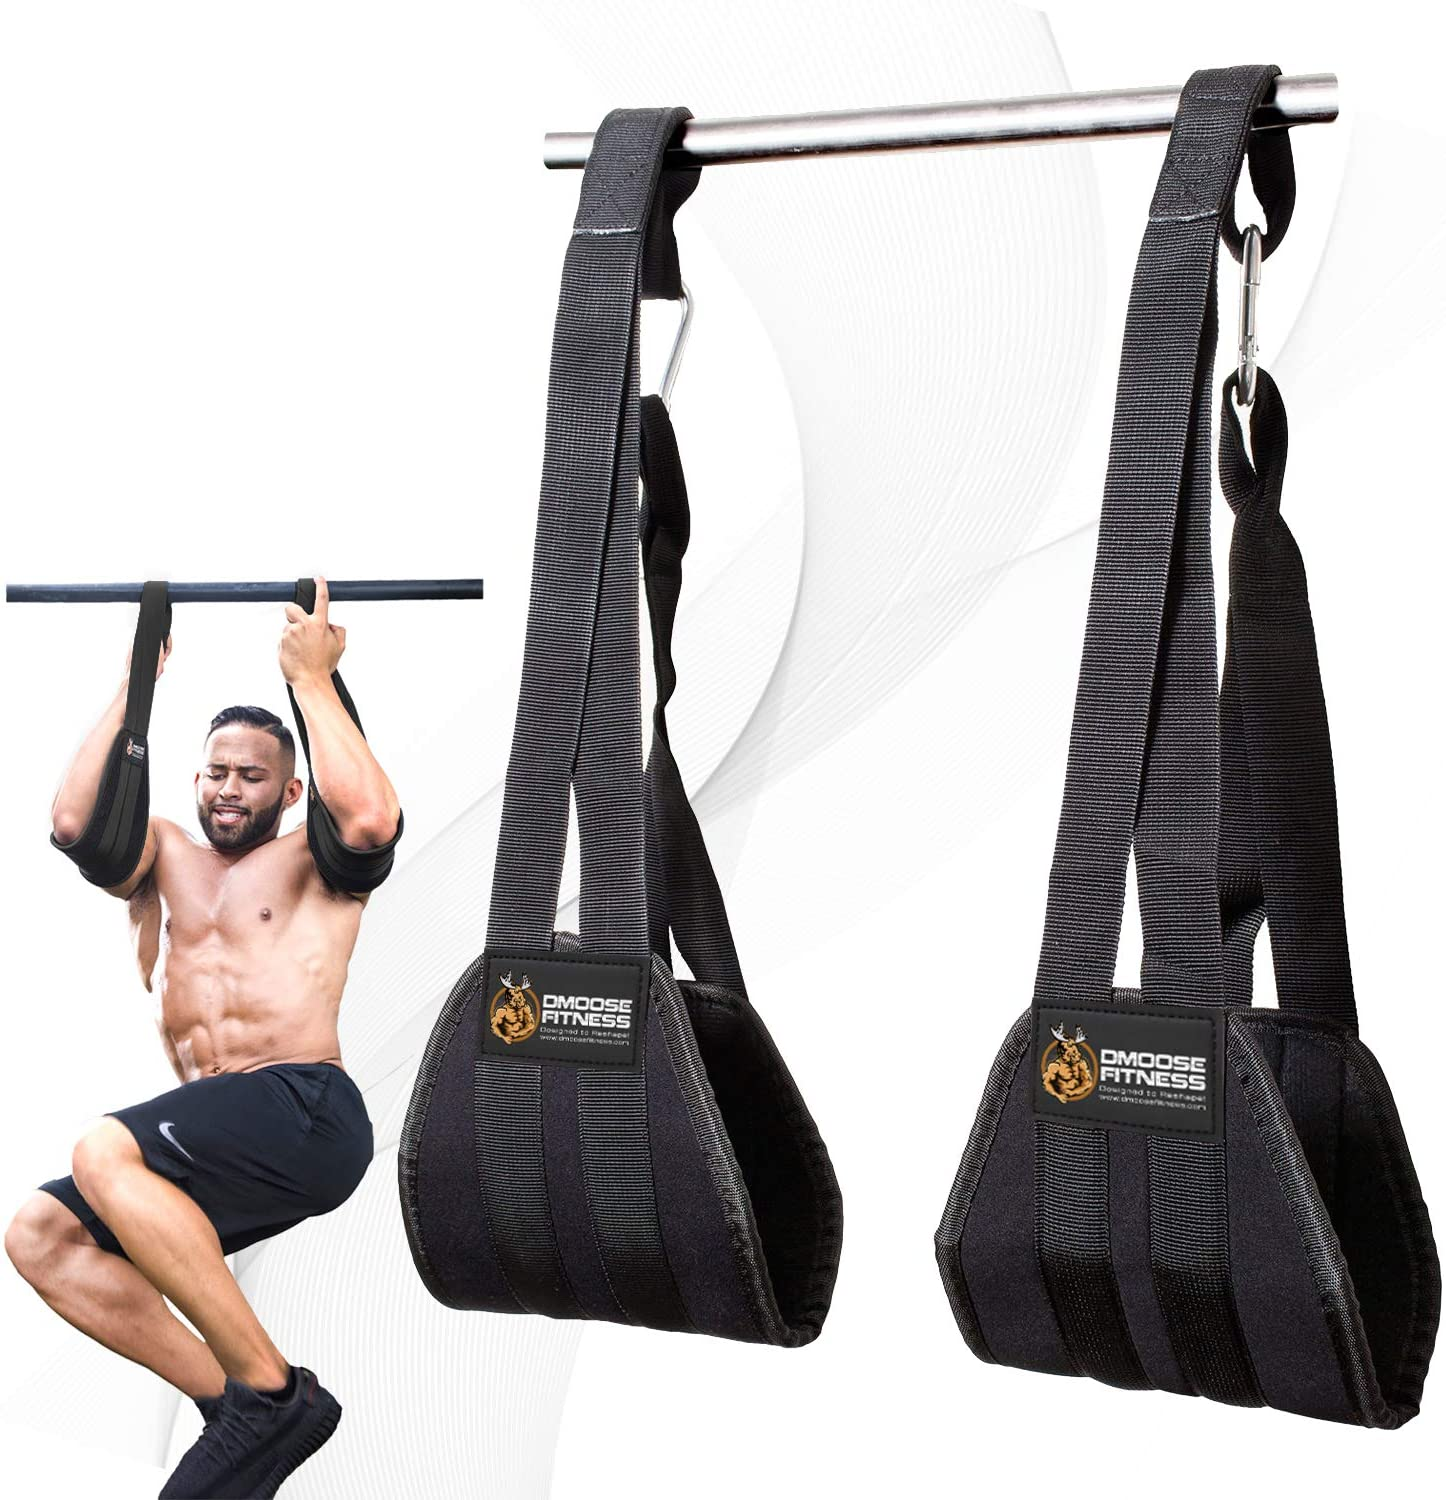 Man using DMoose Fitness Hanging Ab Straps for abs